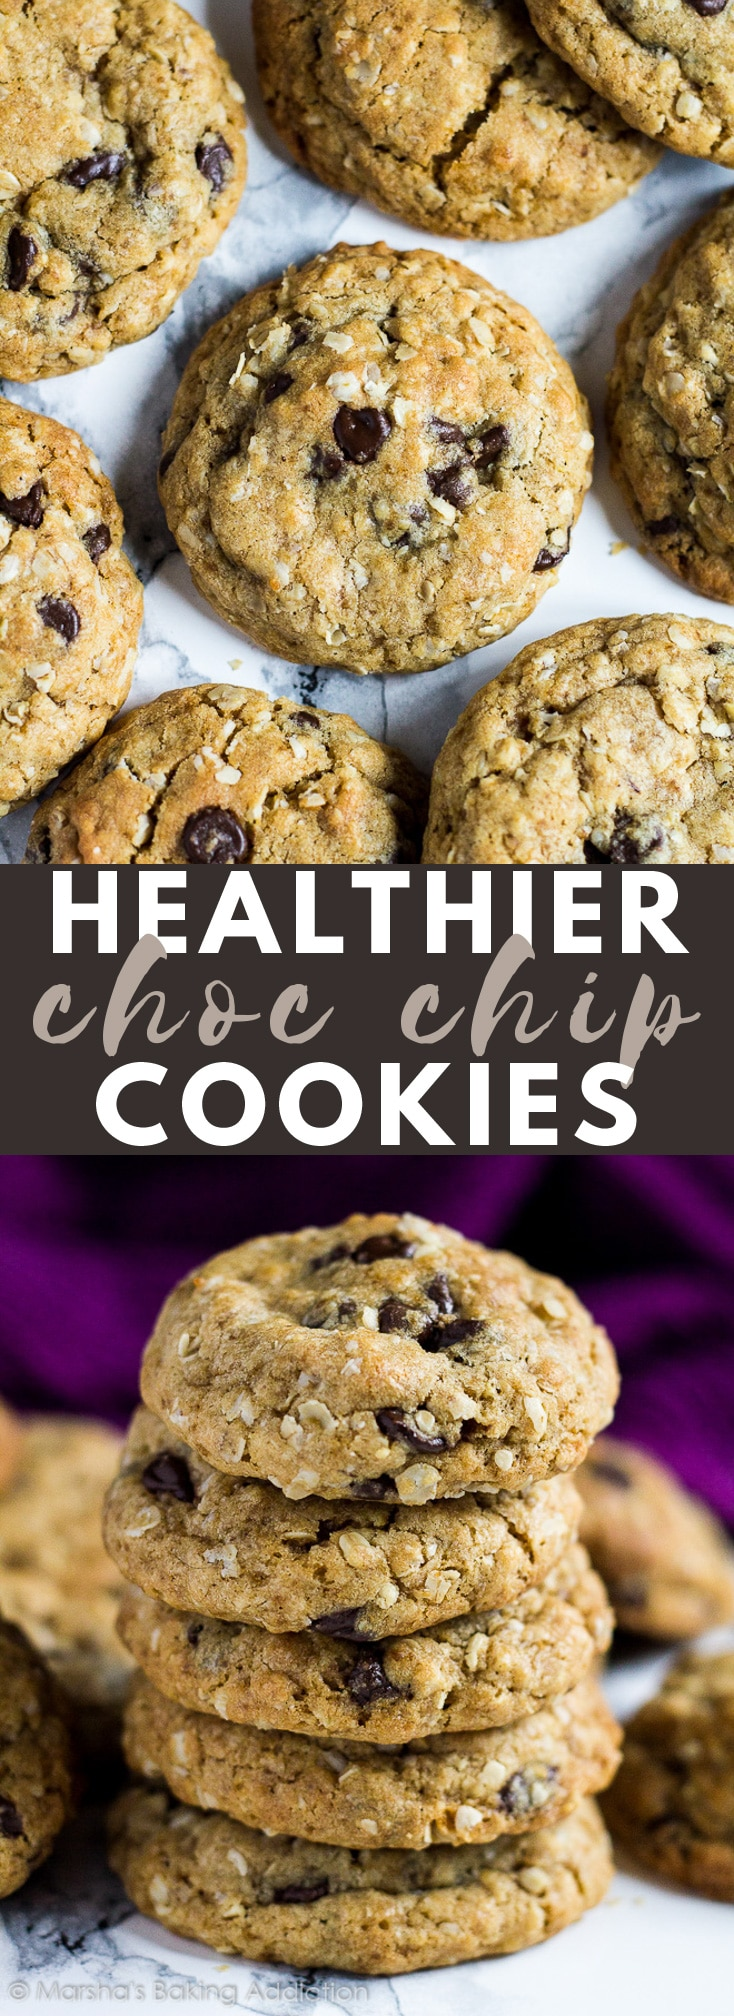 Healthier Chocolate Chip Cookies - Deliciously thick and chewy chocolate chip cookies made with no butter, or refined white sugar. The BEST healthier cookies! #chocolatechipcookies #healthycookies #cookierecipes